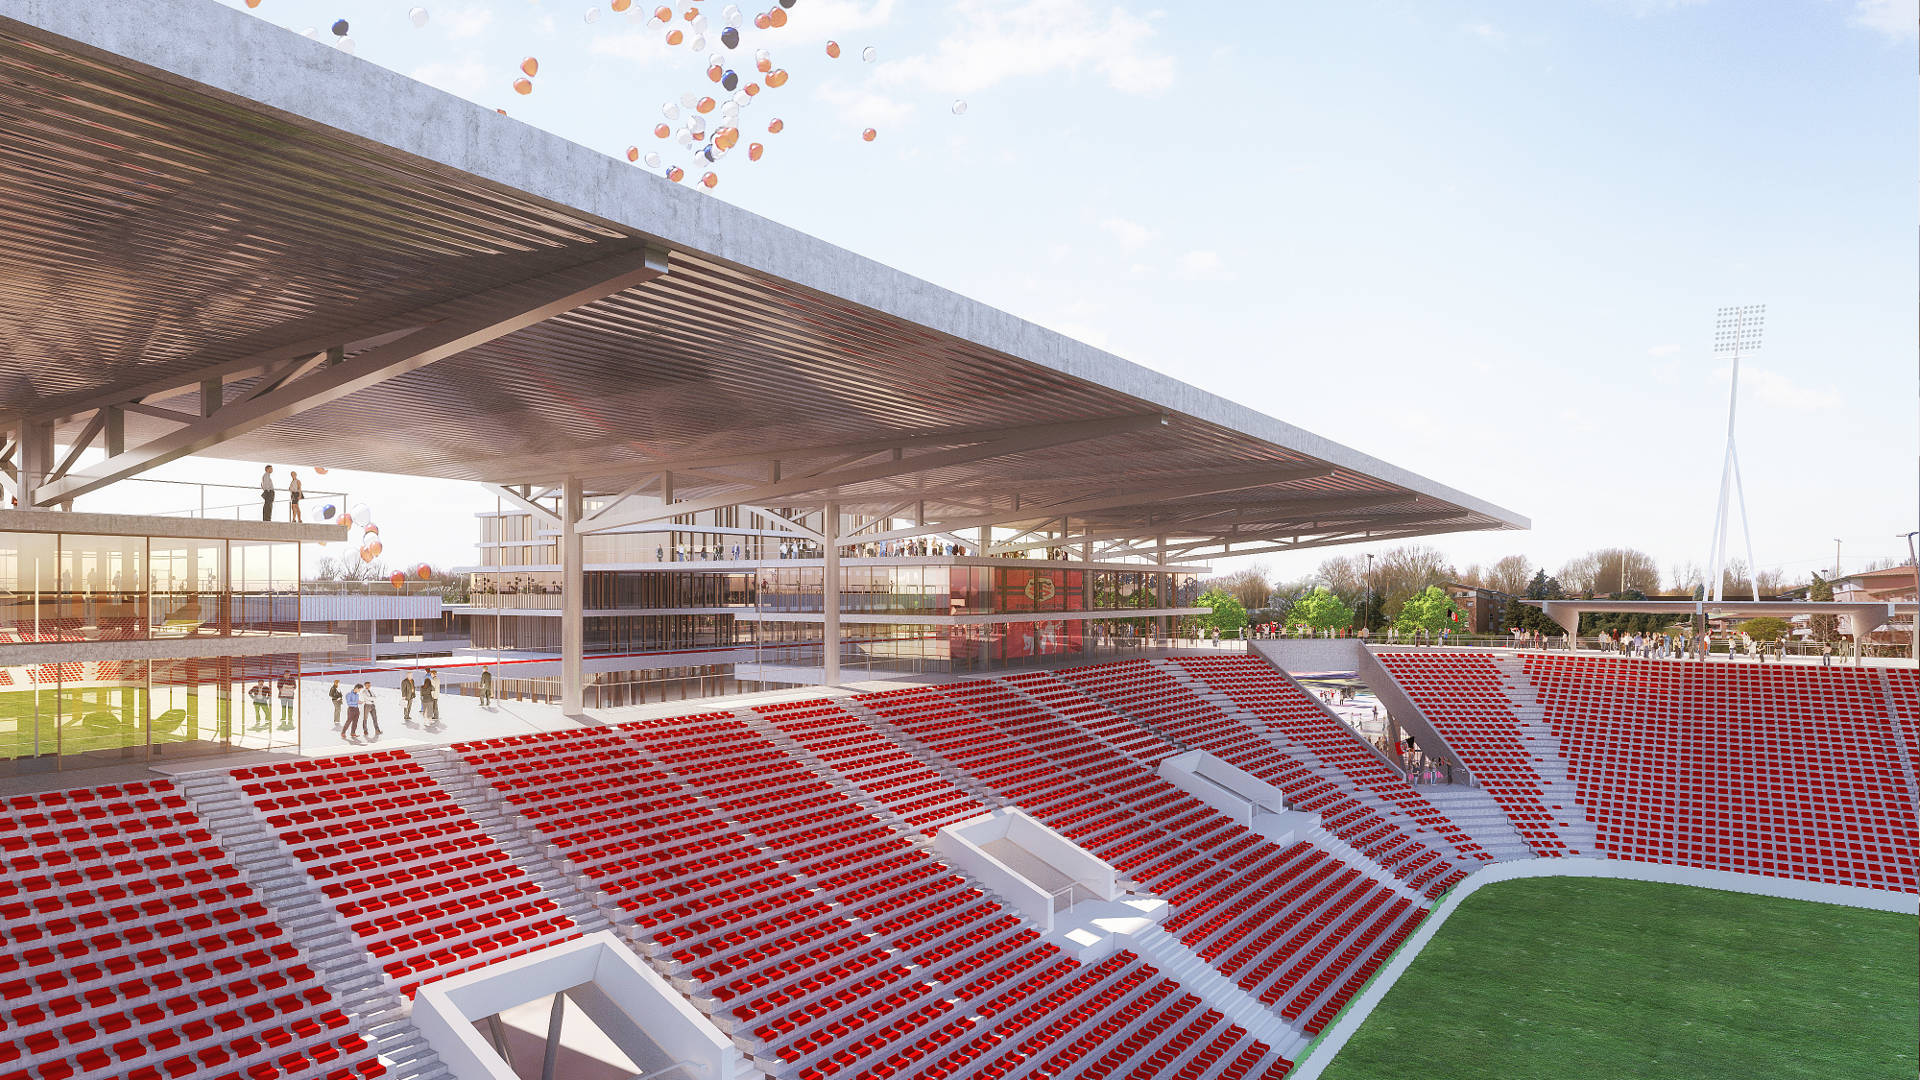 seuil-architecture-stade-e.wallon-tribunes-intelligent-energies-renouvelables